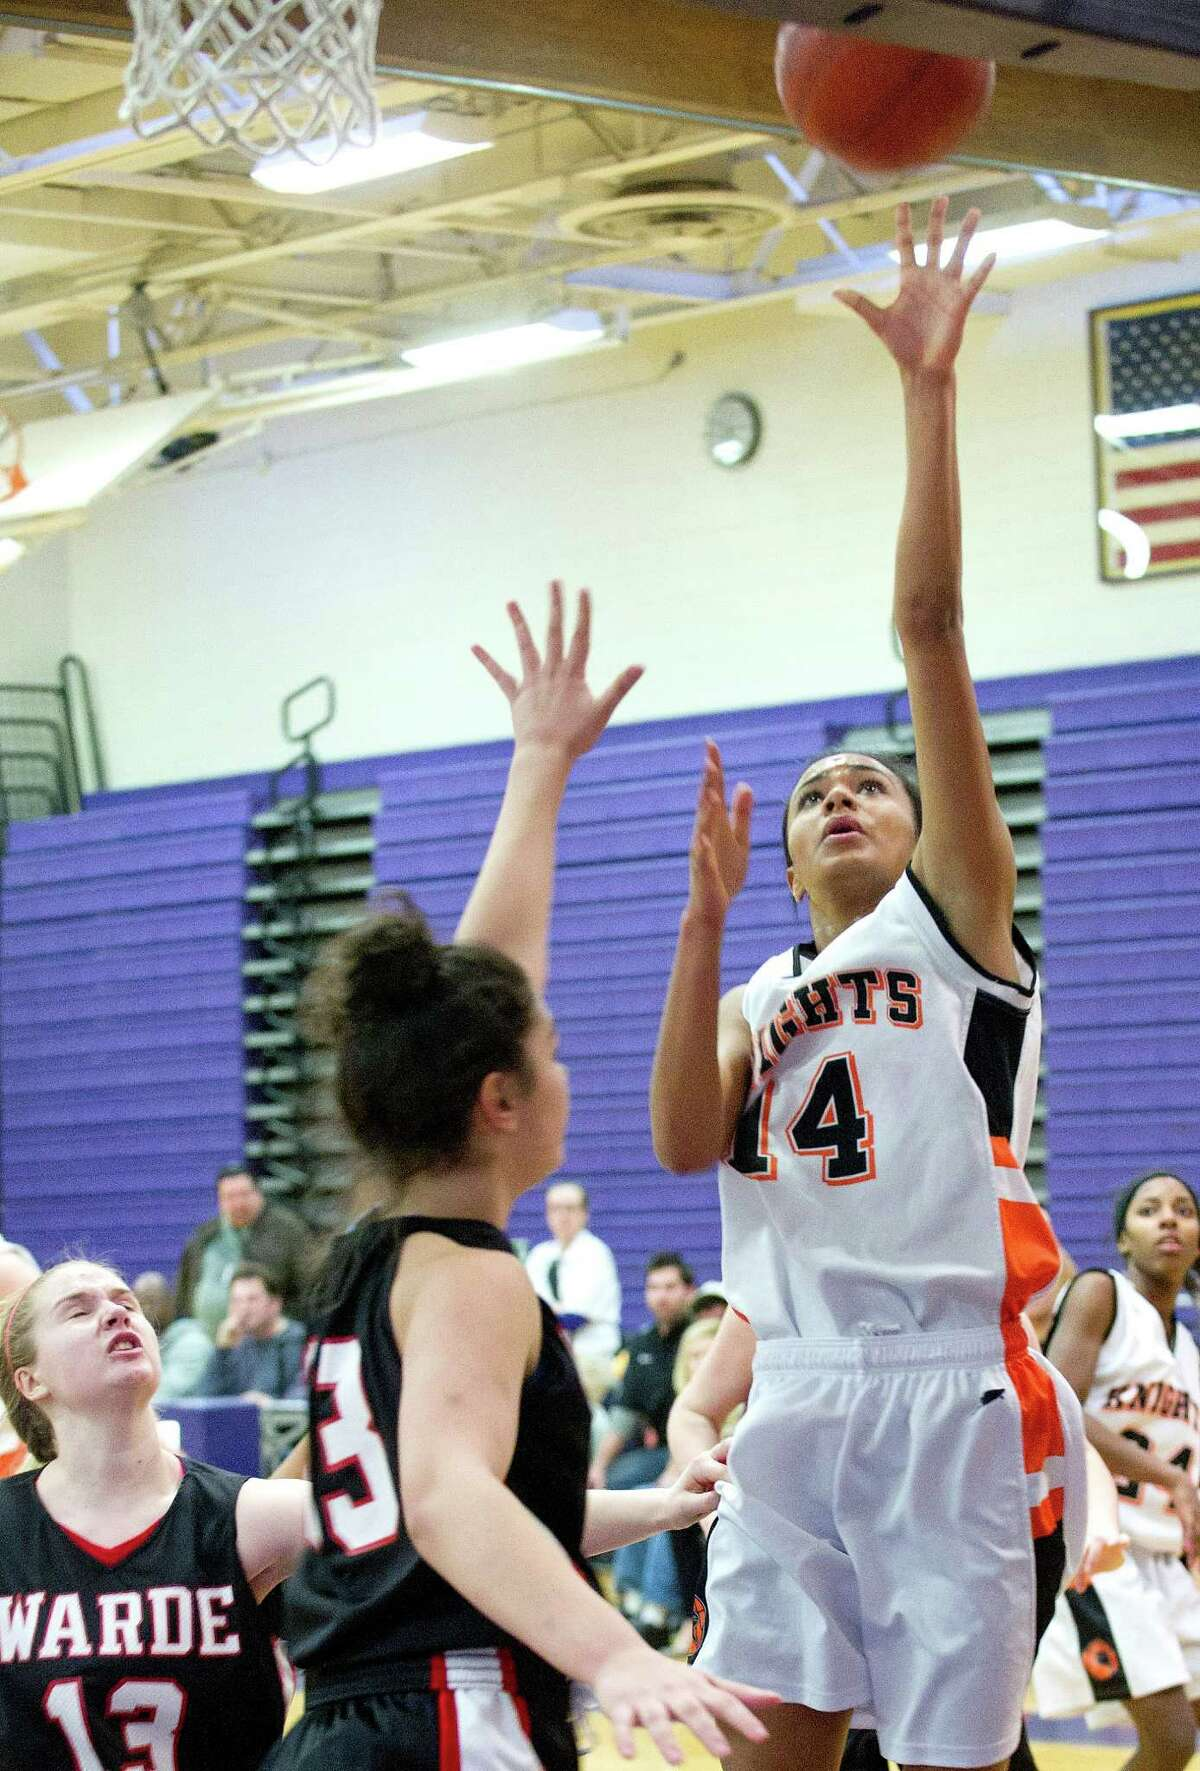 Stamford's Brianna Gordon puts up a shot during Saturday's FCIAC girls basketball quarterfinal game against Fairfield Warde at Westhill High School on February 22, 2014.